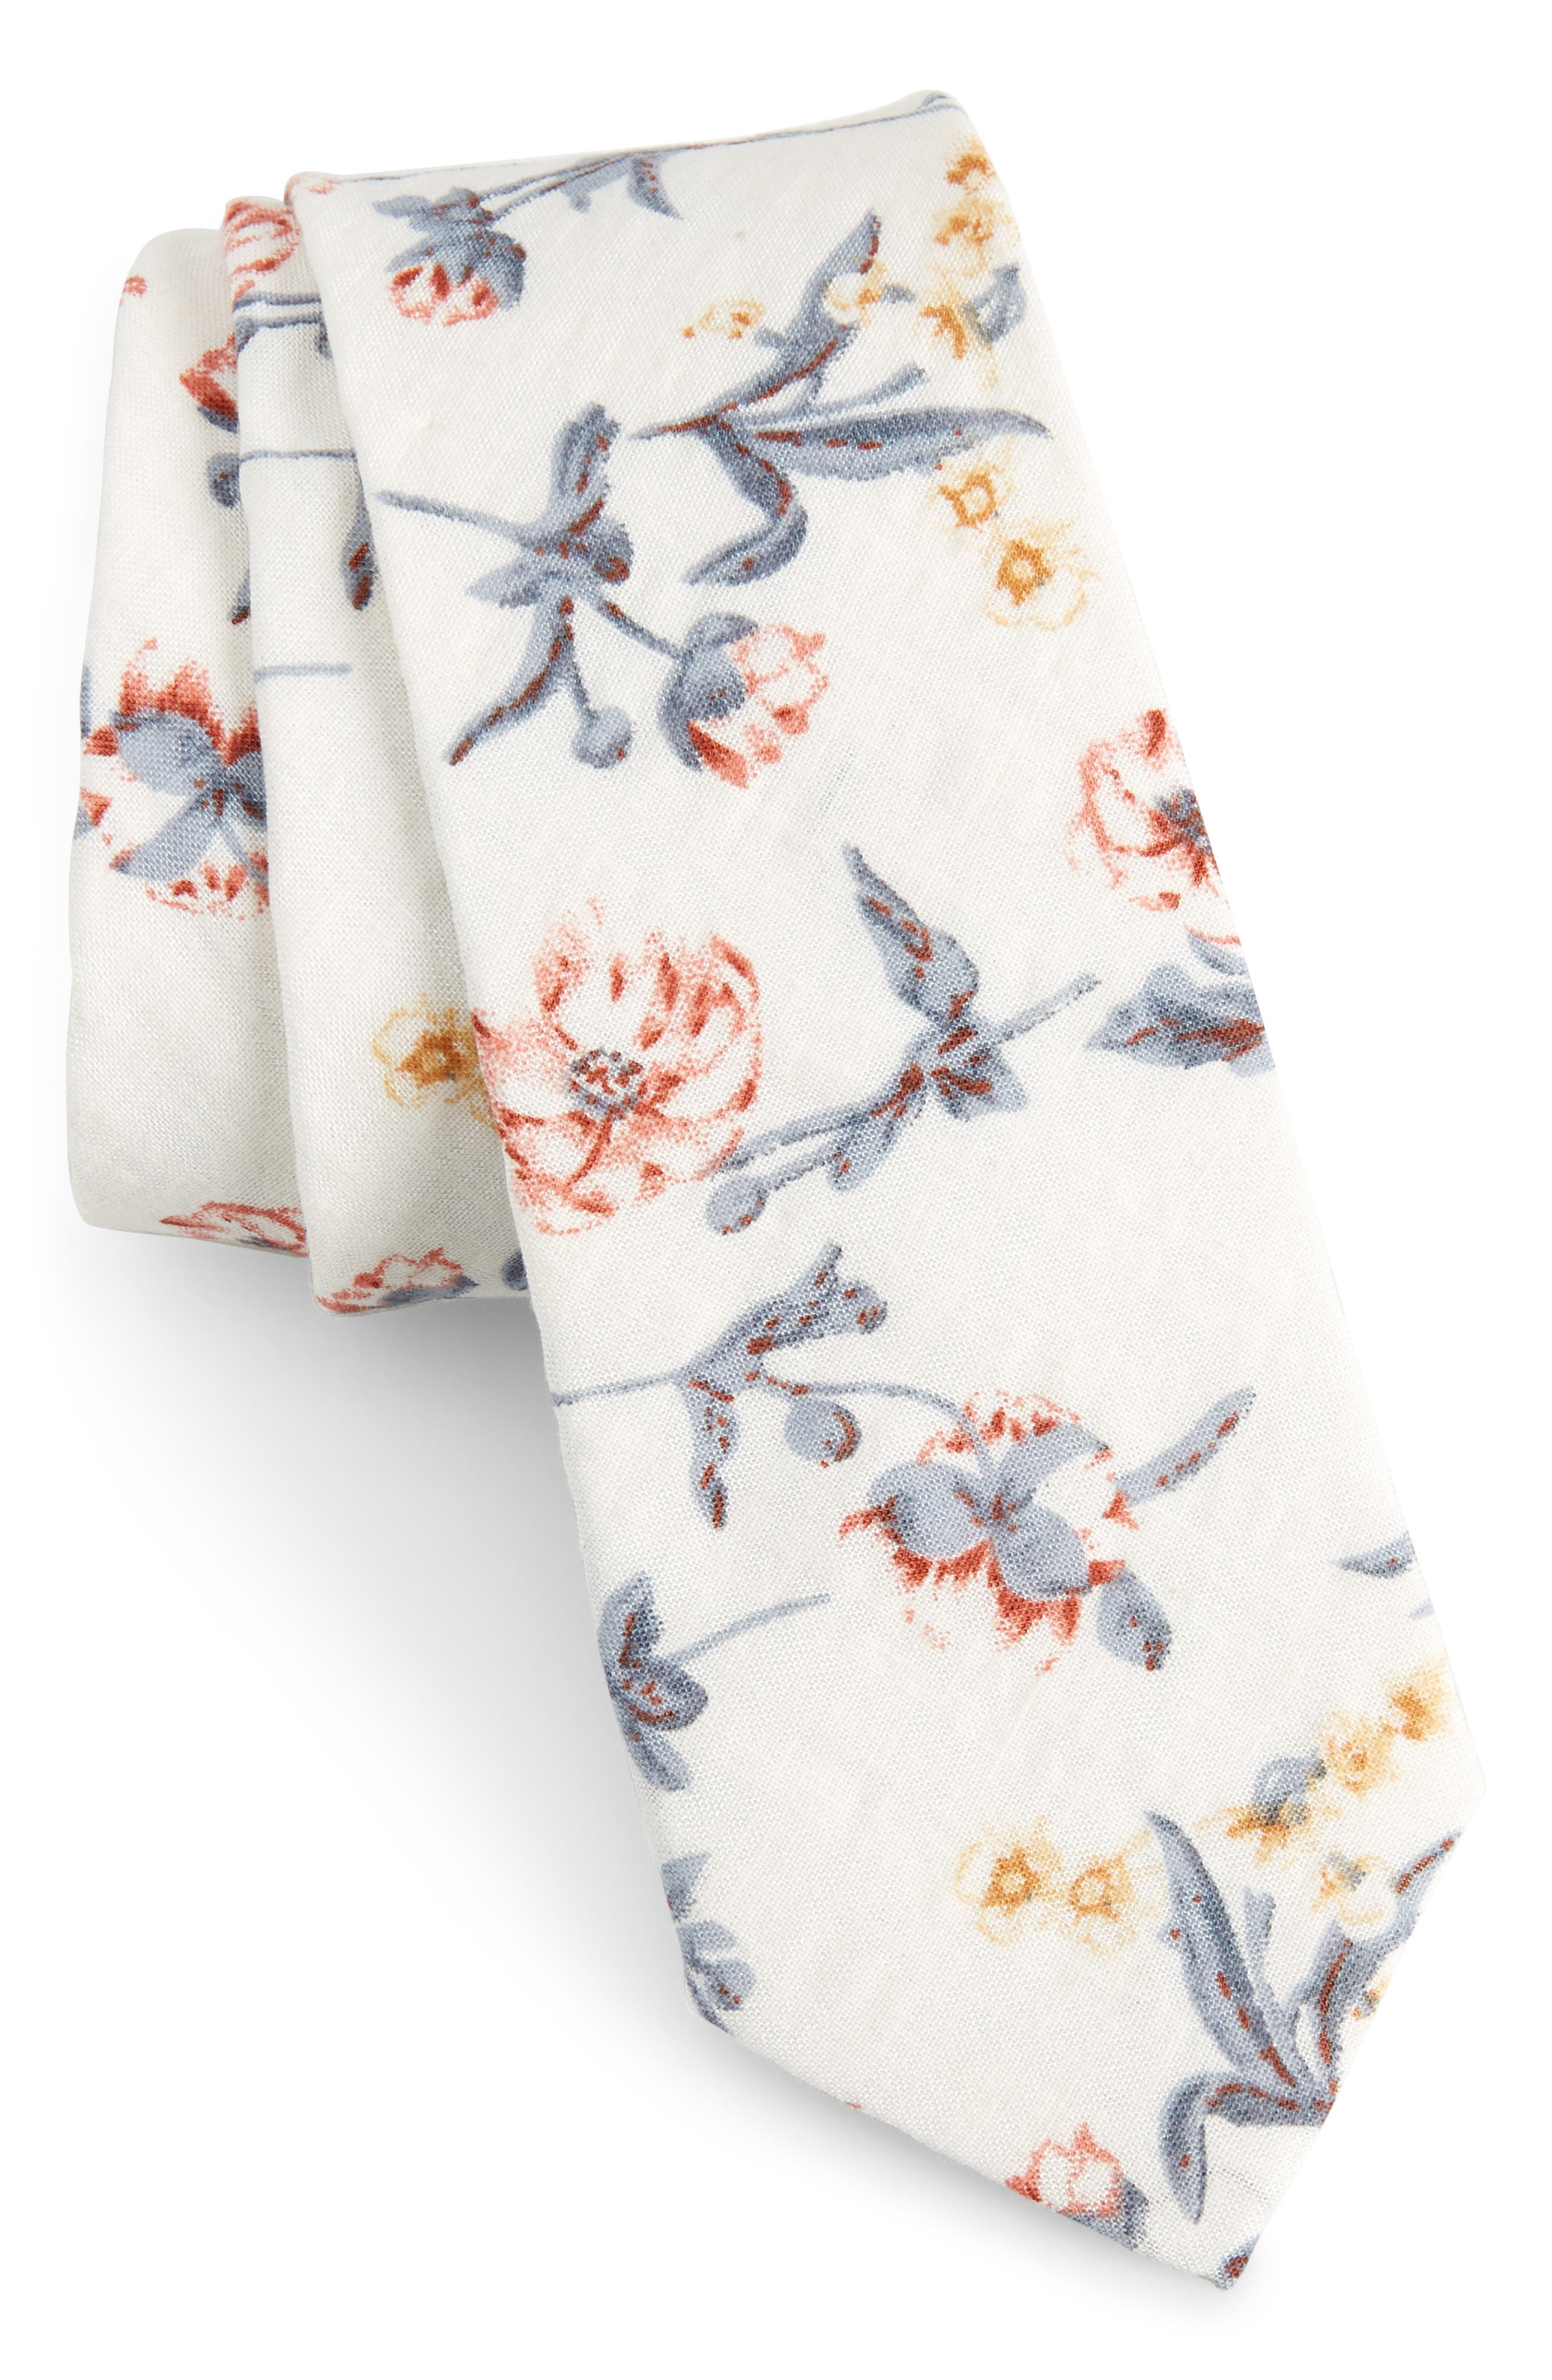 Nunley Floral Cotton Skinny Tie,                         Main,                         color, White